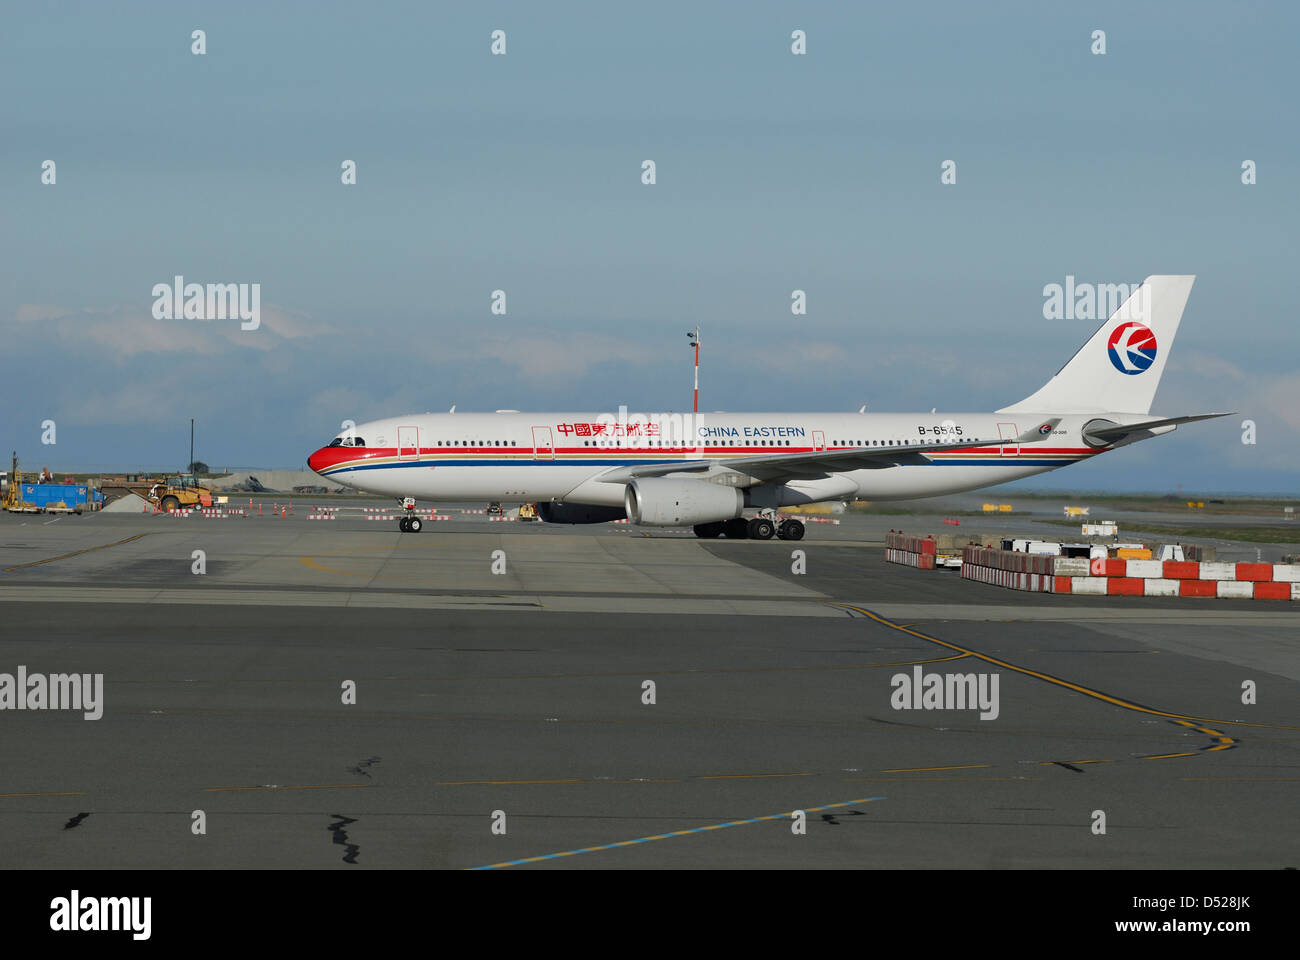 China Eastern Airbus taxiing into Vancouver International airport terminal. - Stock Image